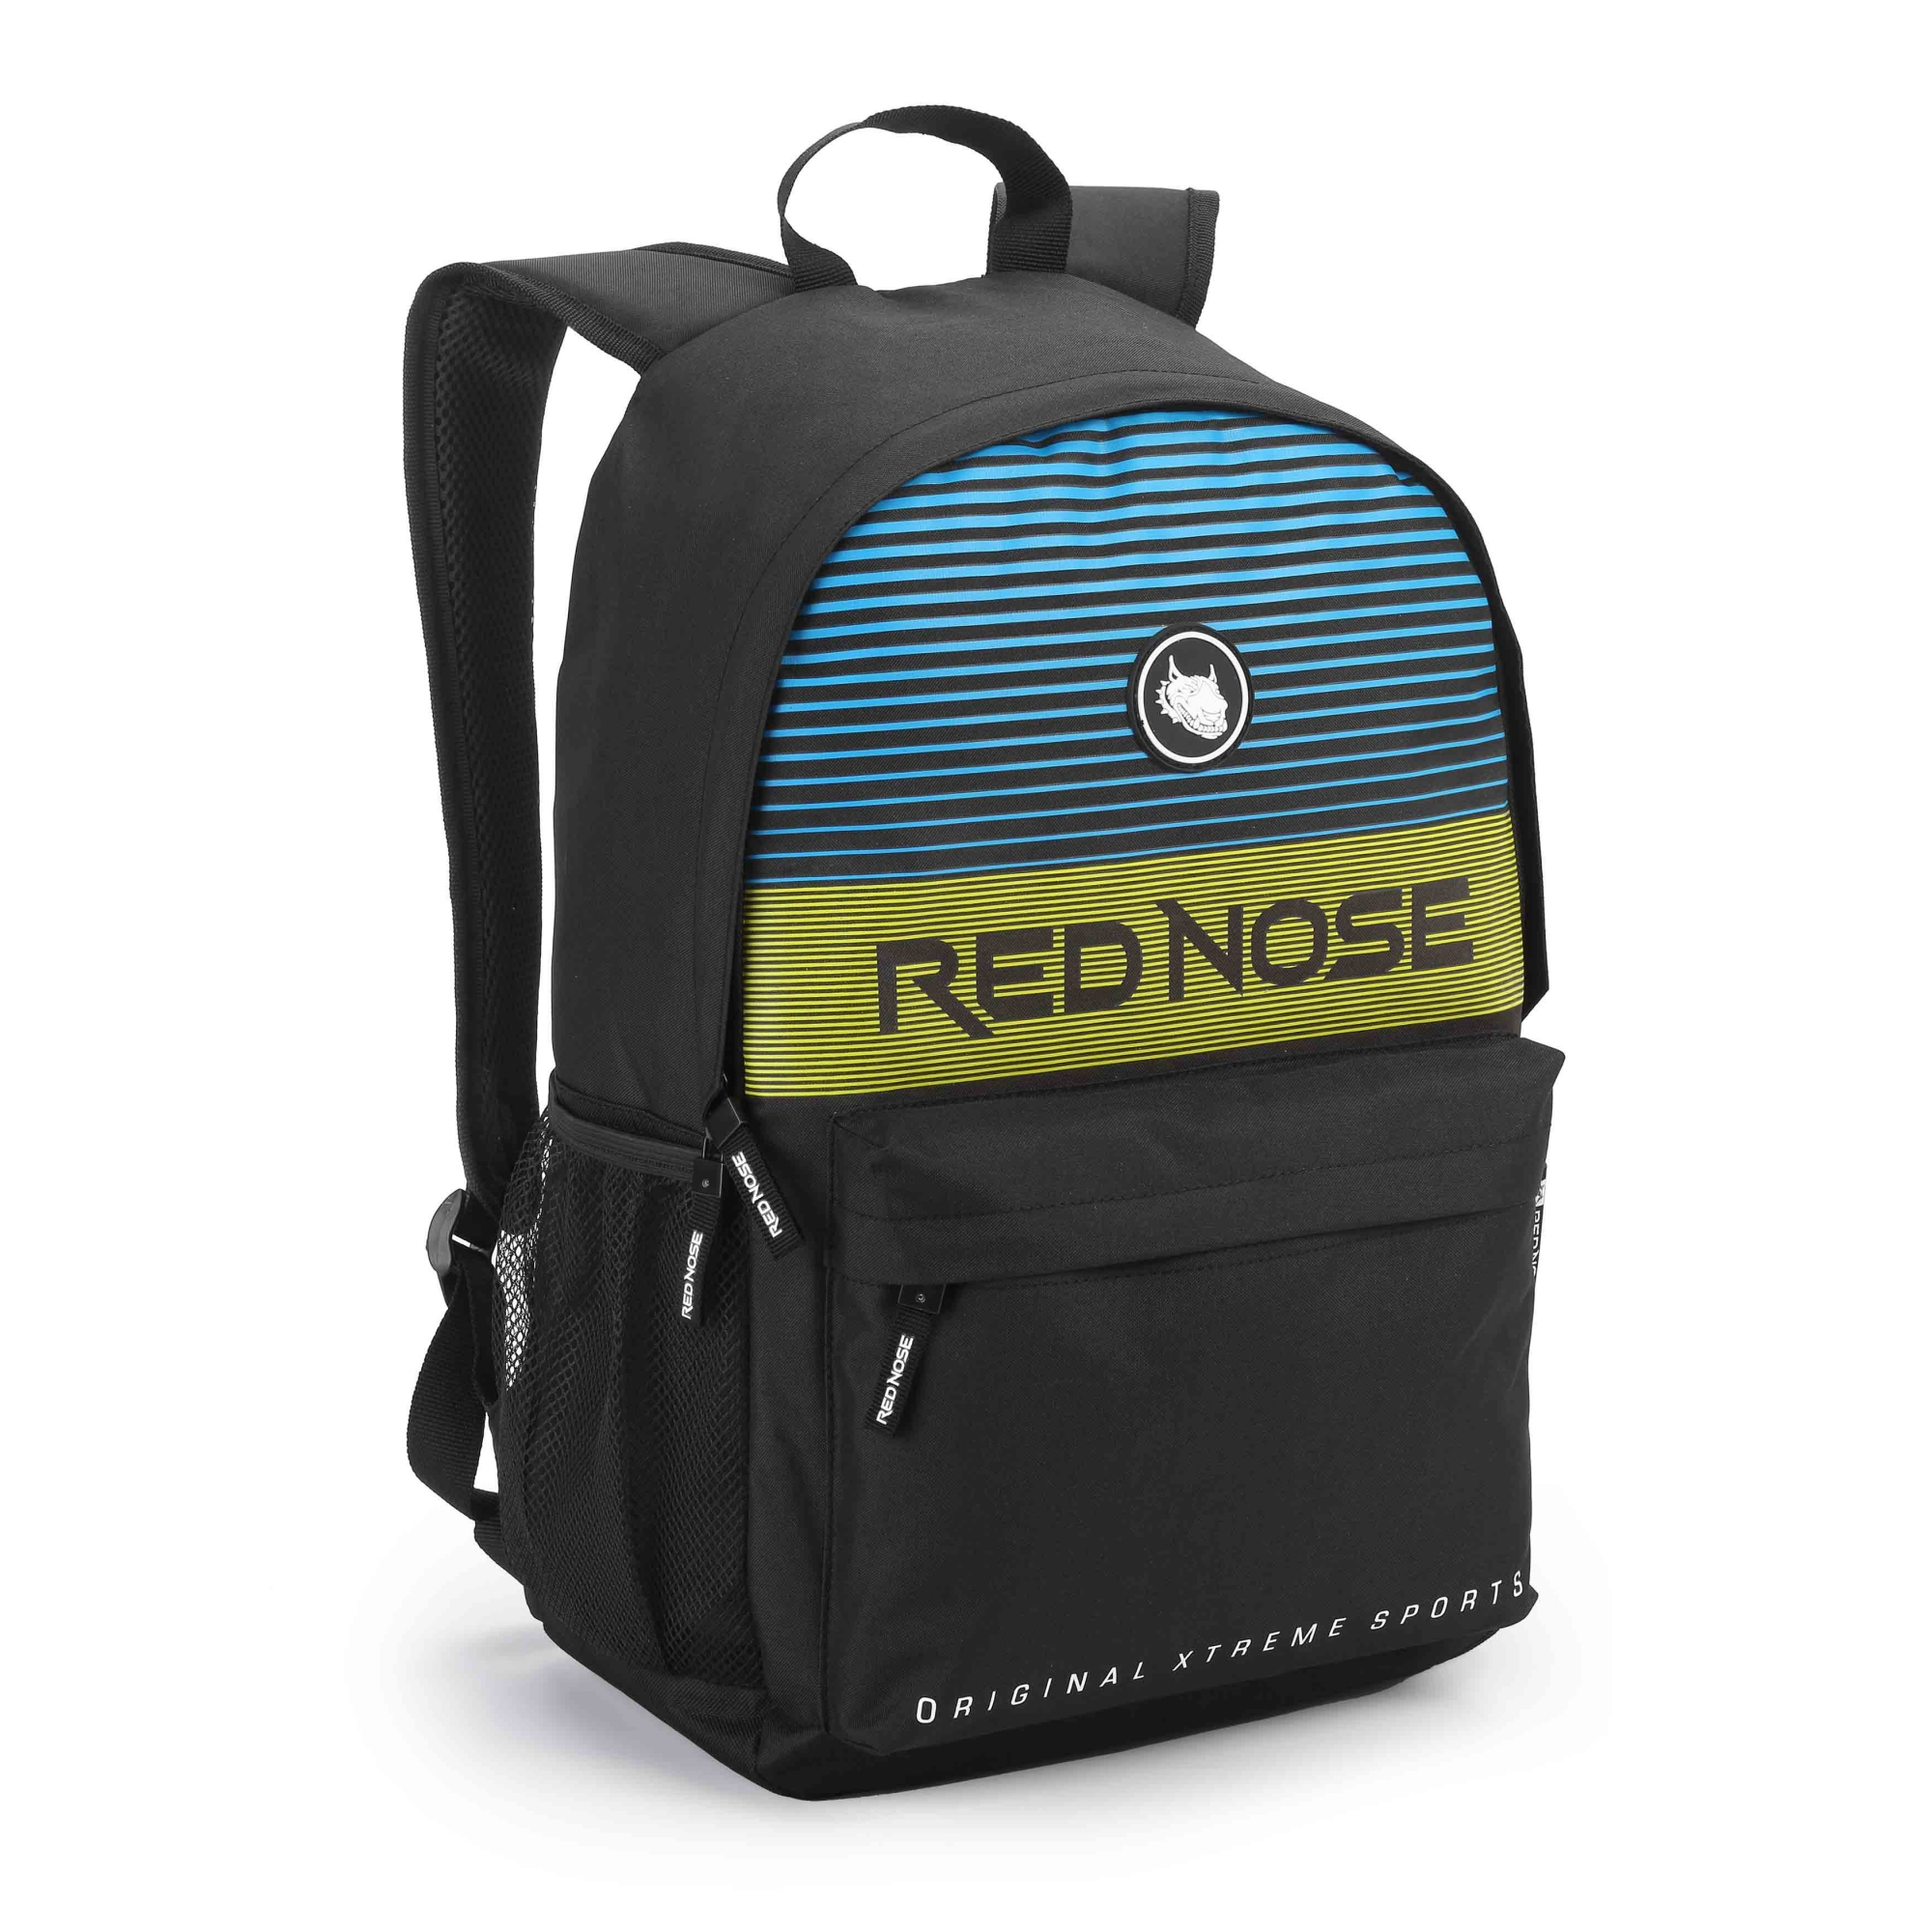 MOCHILA RED NOSE AZUL - SEANITE